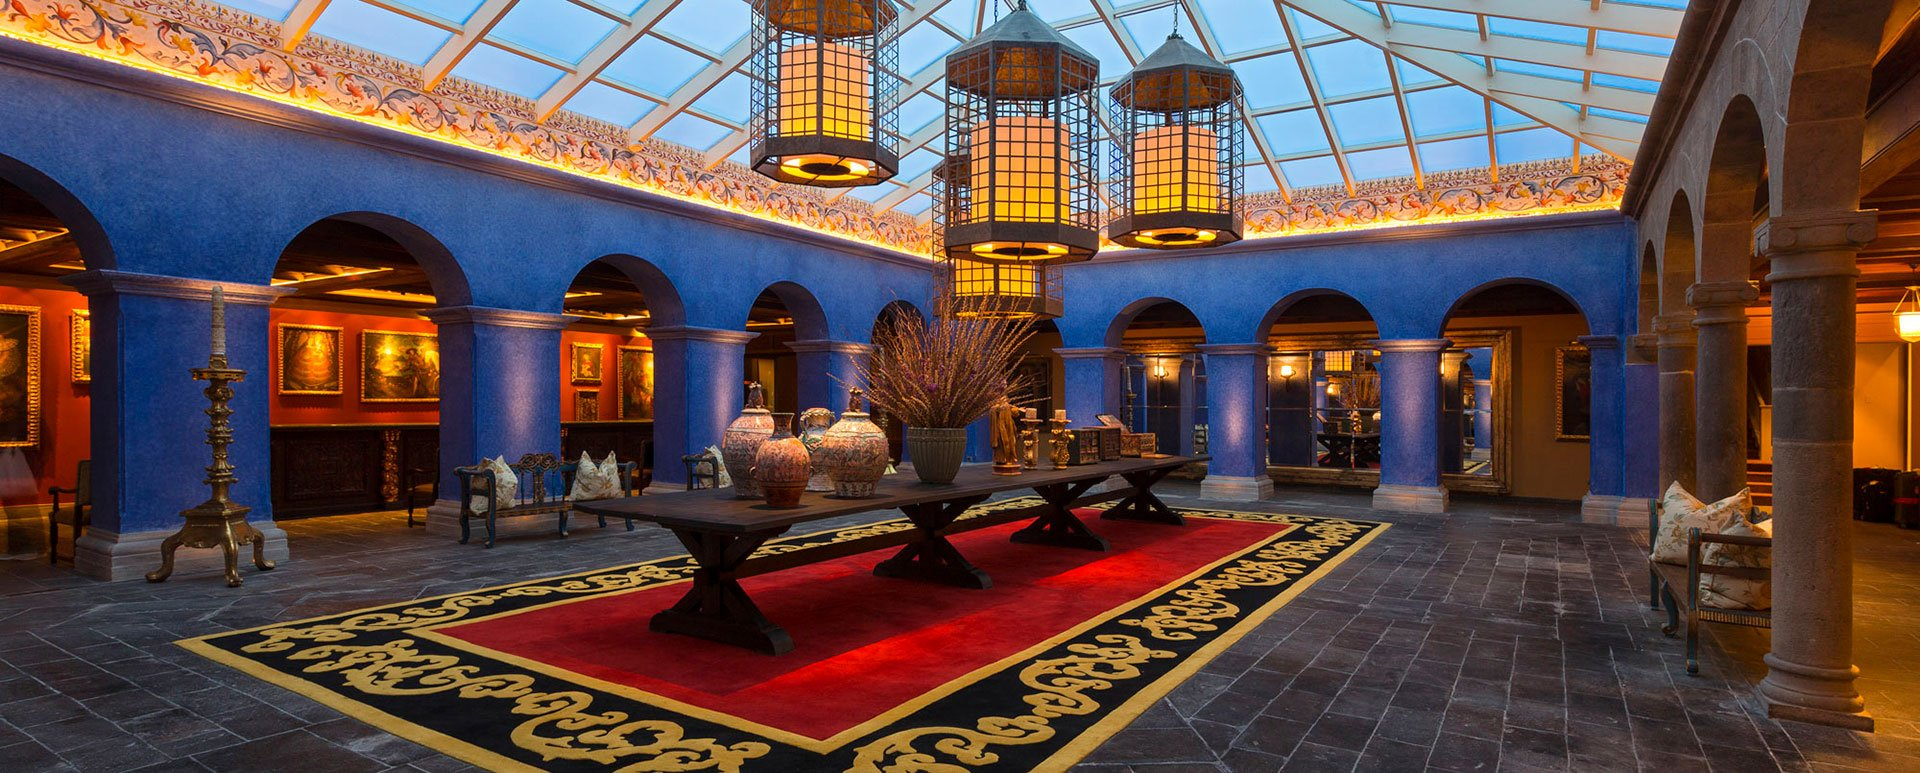 Palacio del Inka reception area